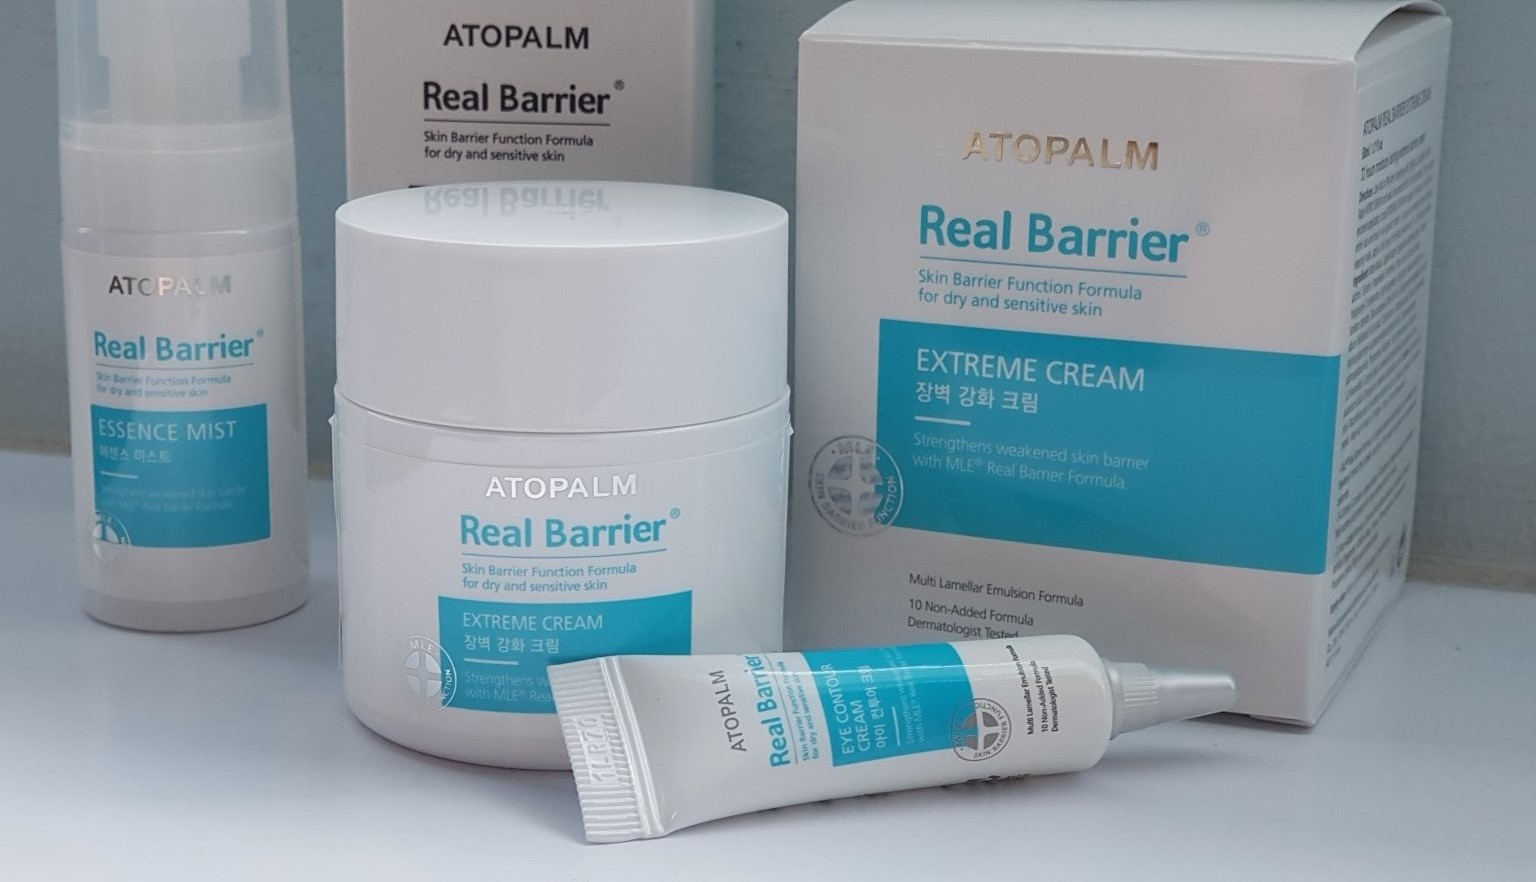 Review: Atopalm Real Barrier Extreme Cream (Tested in 2 climates!)